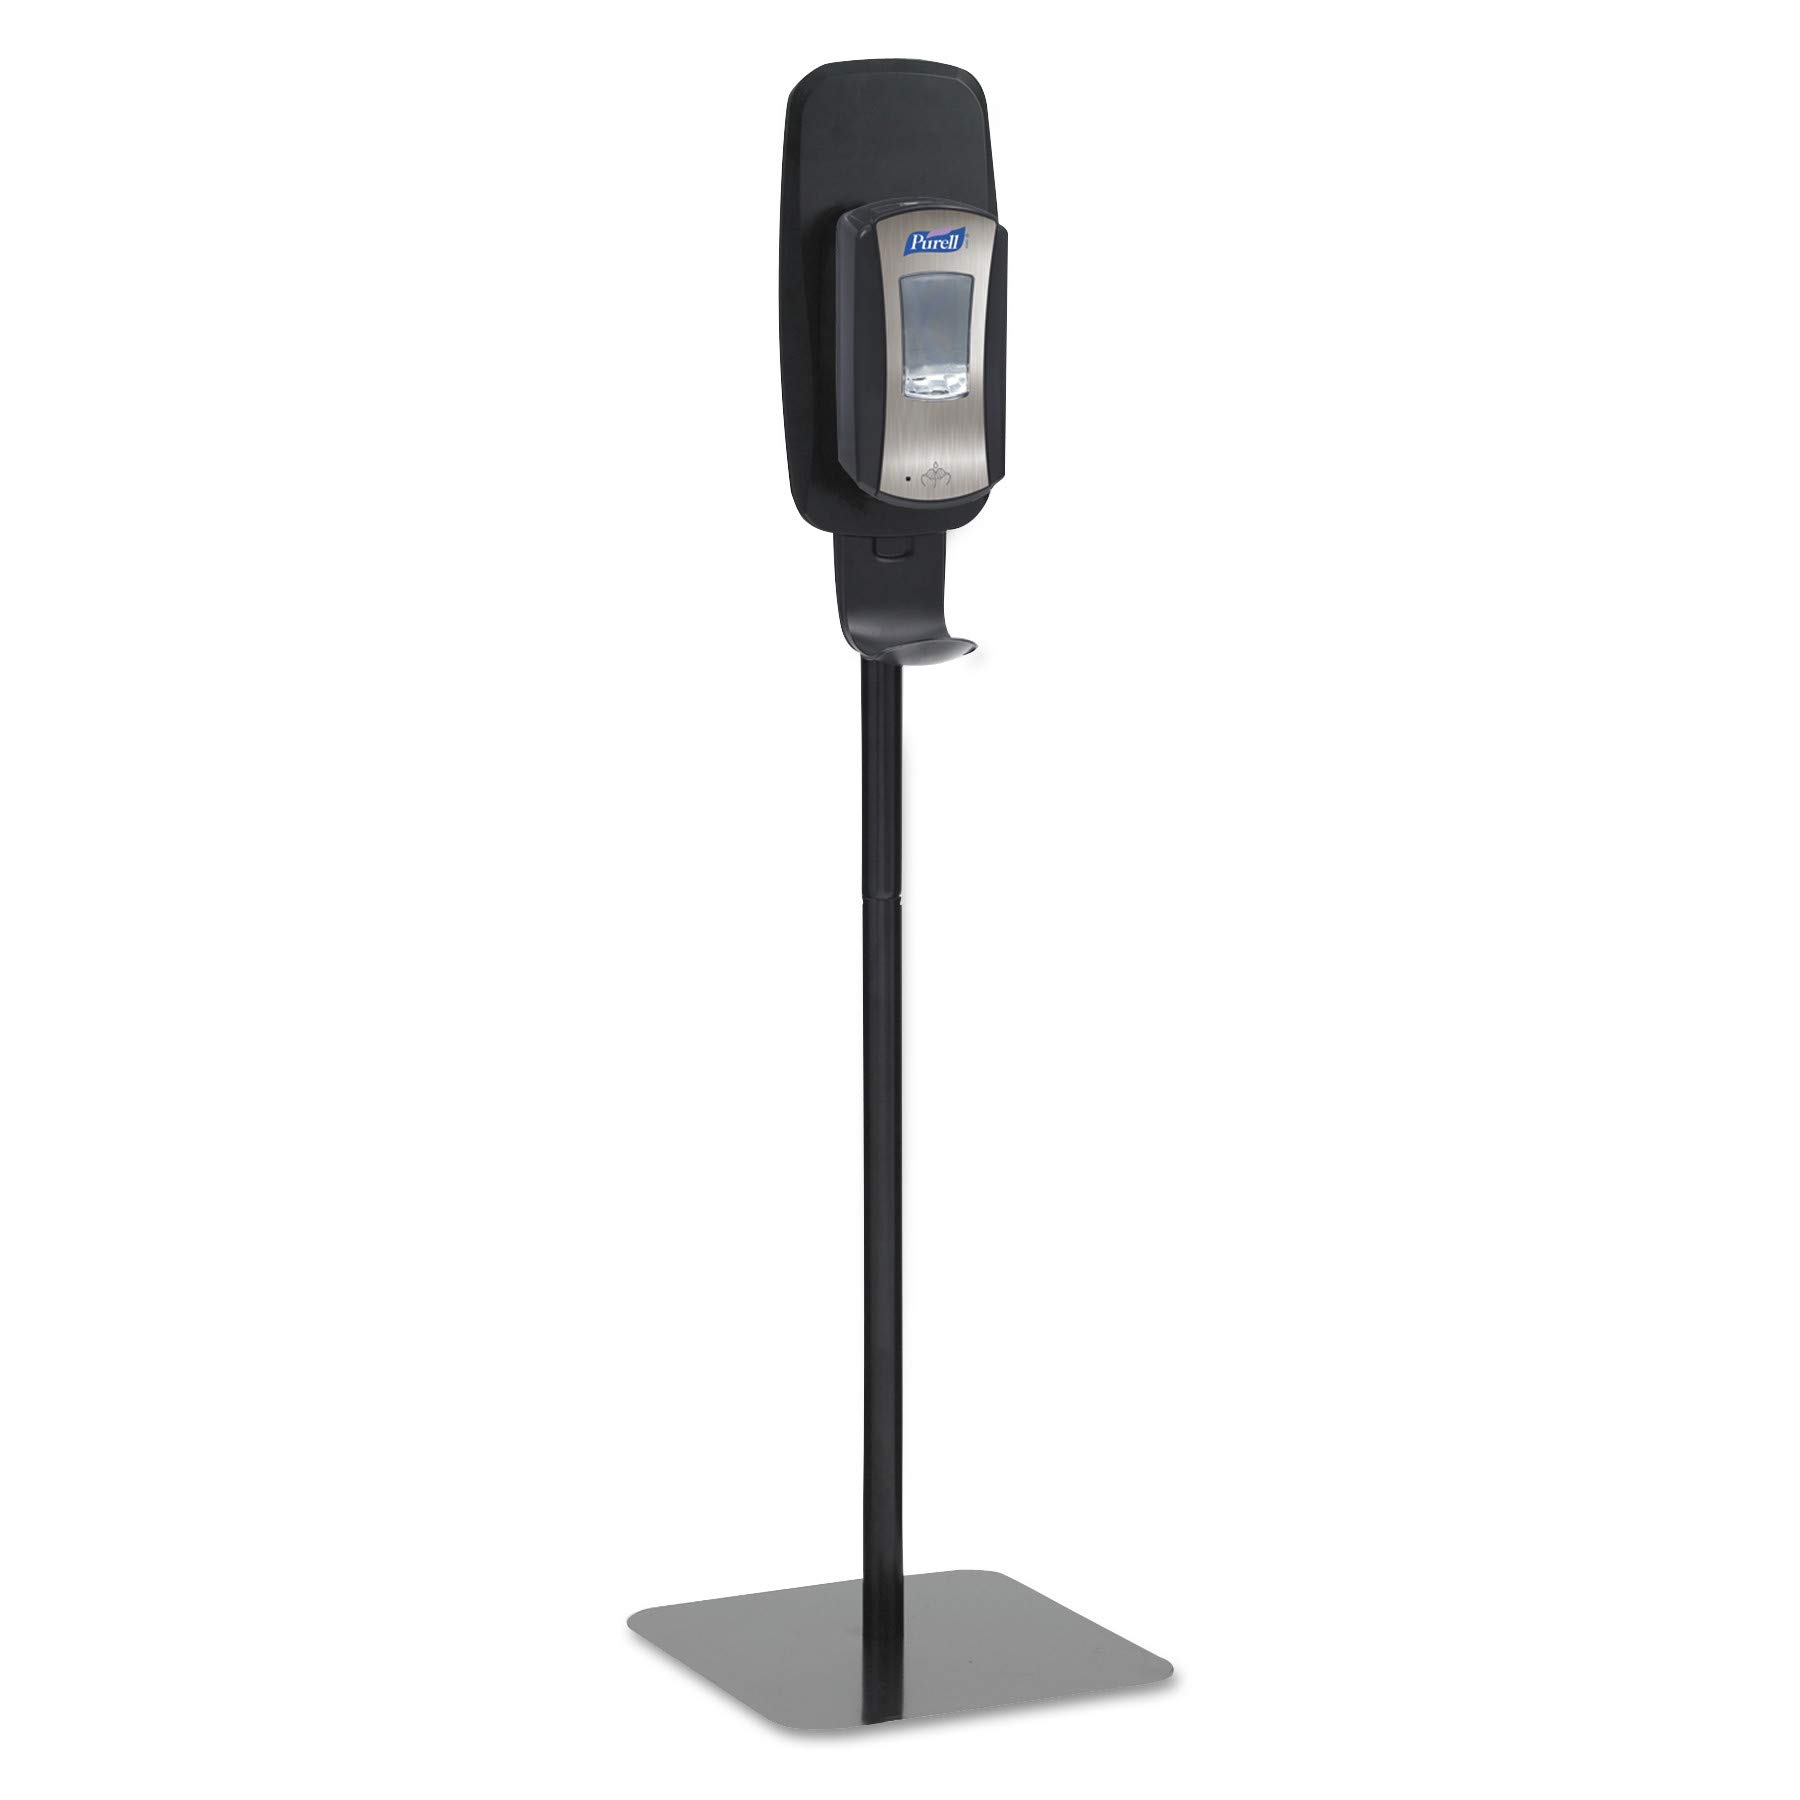 PURELL Hand Sanitizer Dispenser Floor Stand, Black, Floor Stand for use with PURELL LTX or TFX Touch-Free Sanitizer Dispensers - 2425-DS by Purell